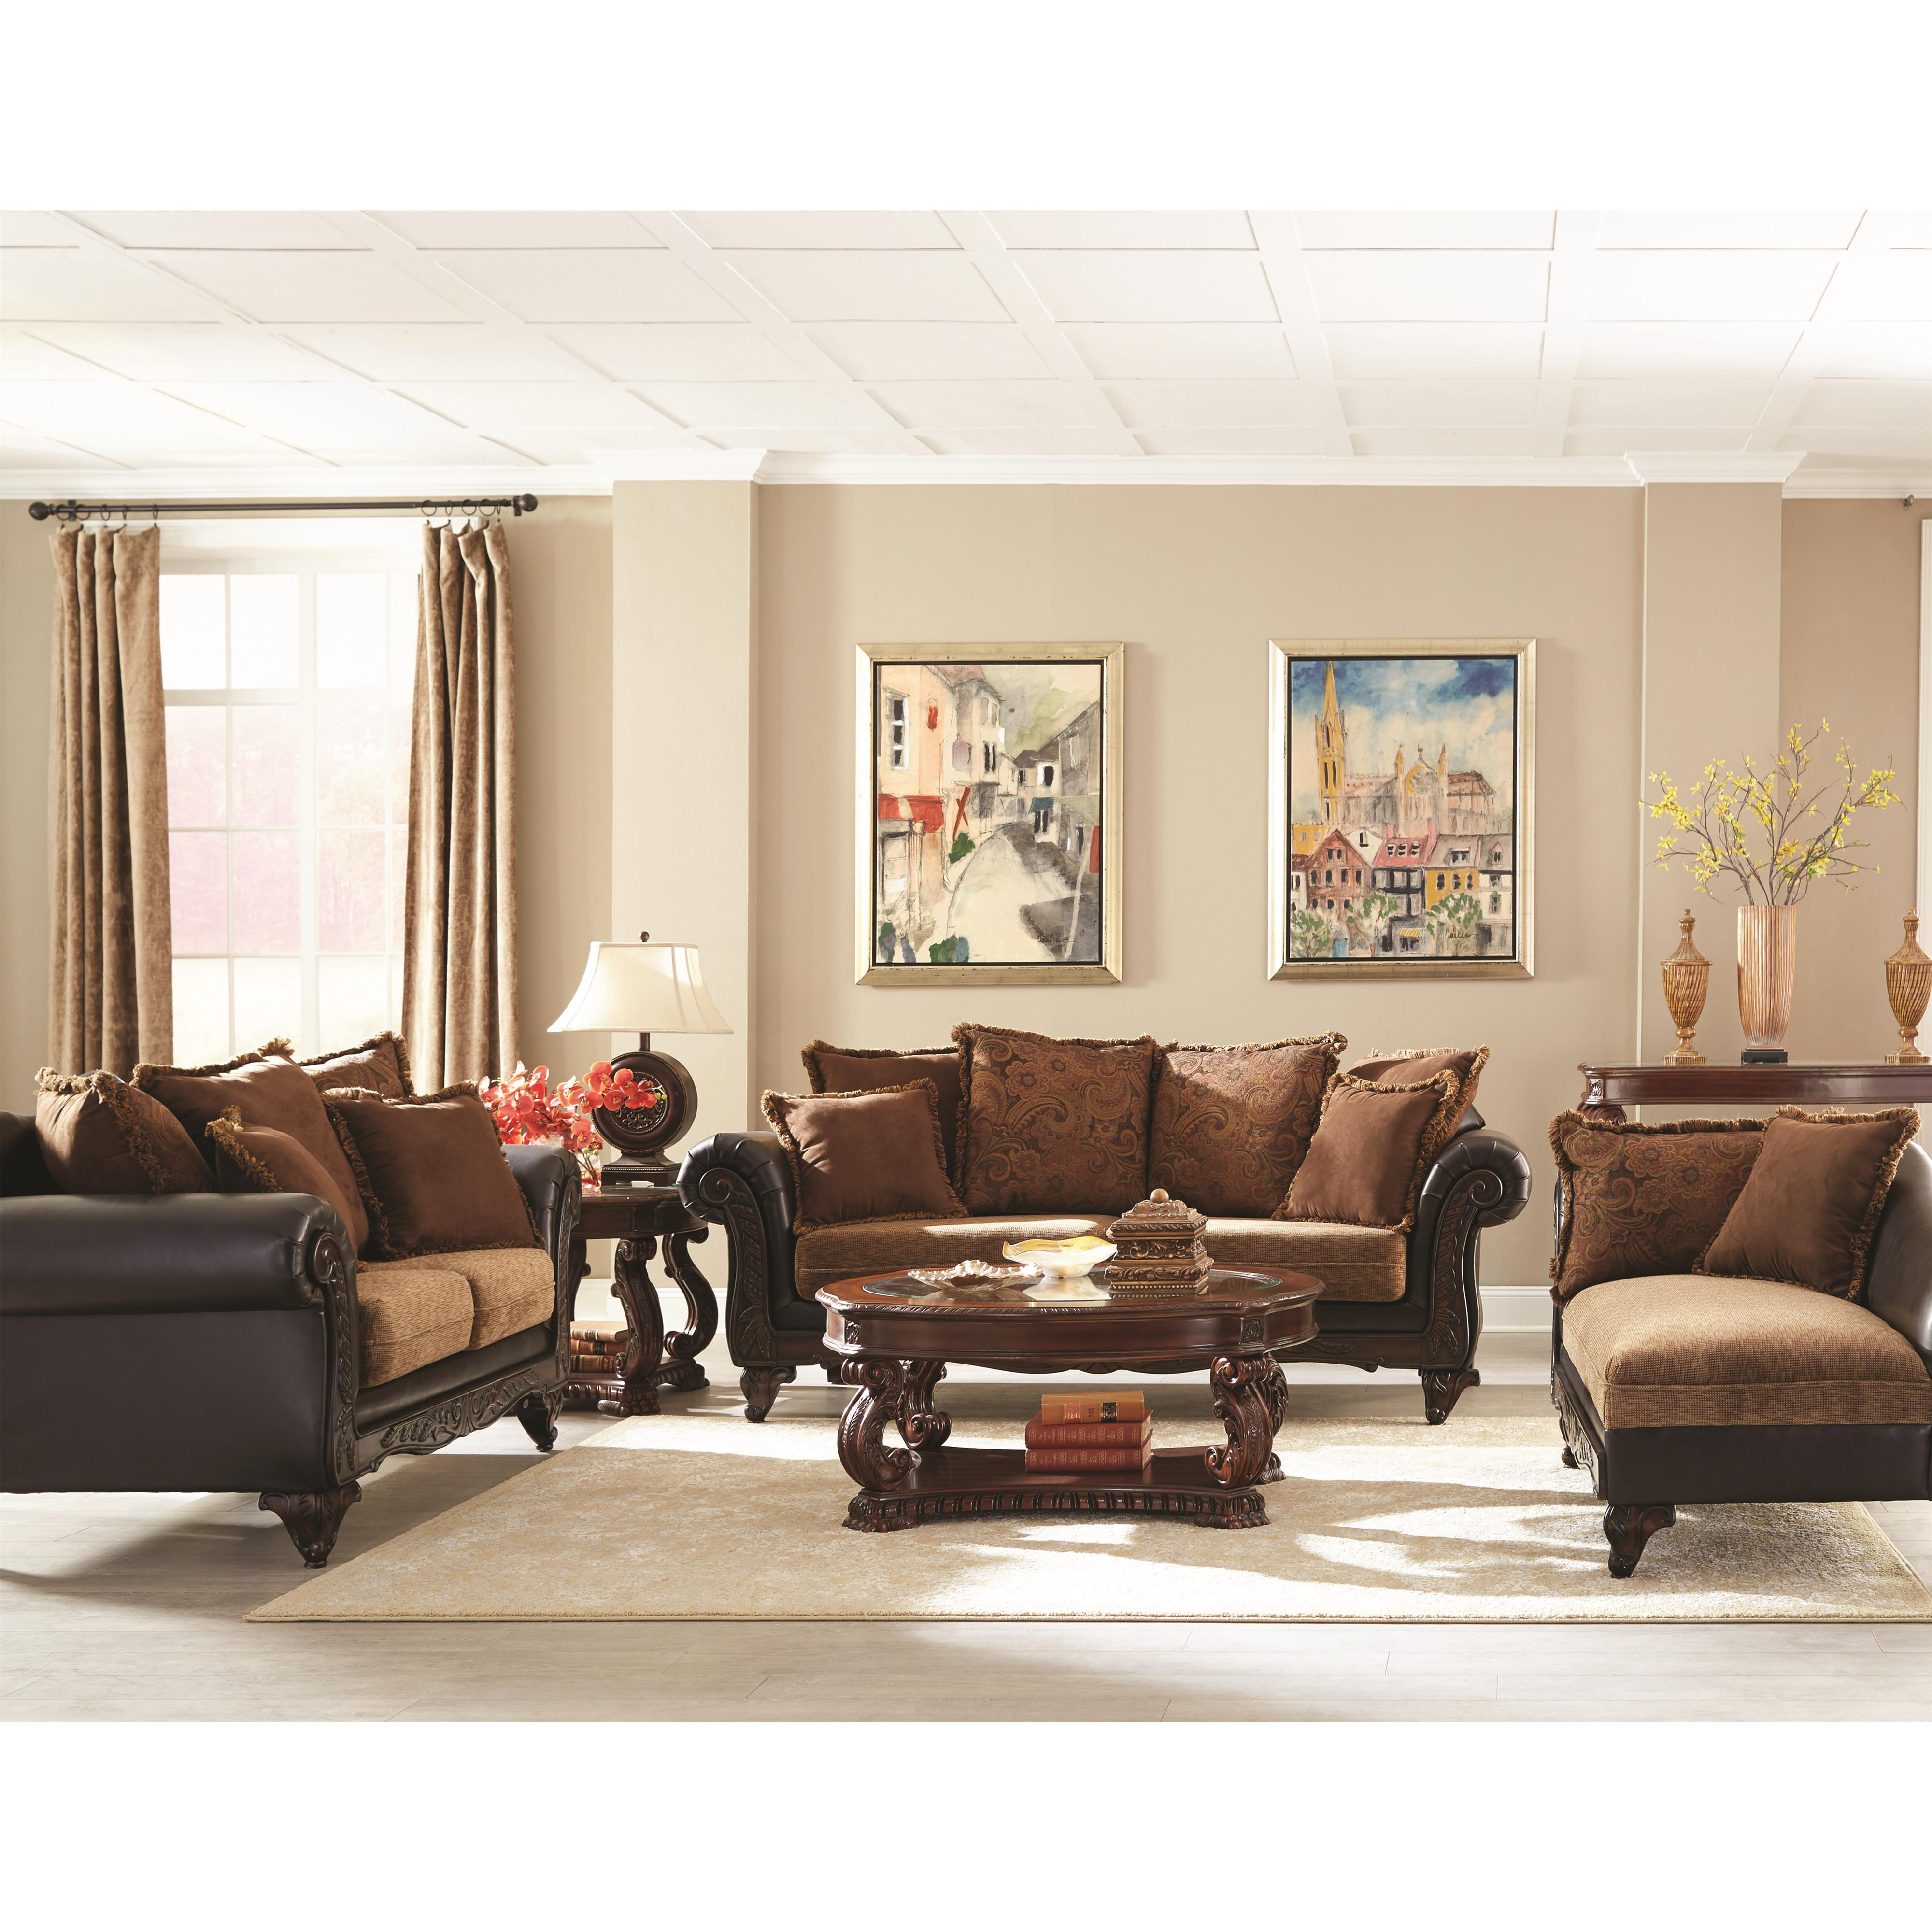 Cheap Living Room Furniture Dallas Tx Discount Bedroom Sets In Dallas Tx Full Size Of Accent